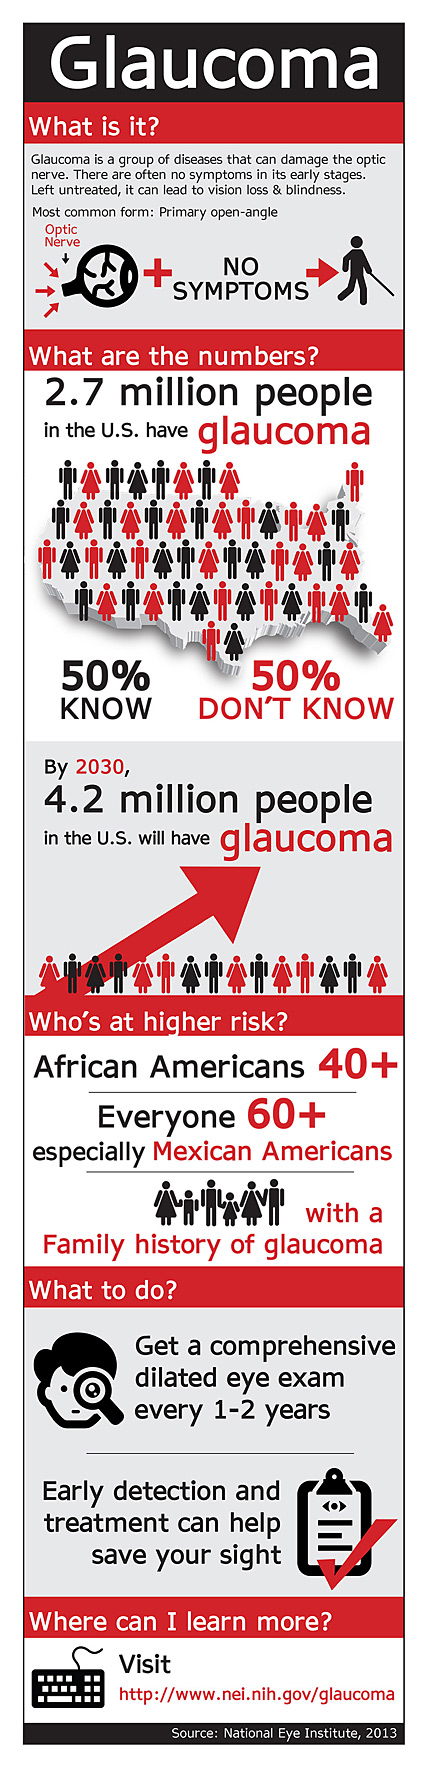 Glaucoma Infographic in English Preview